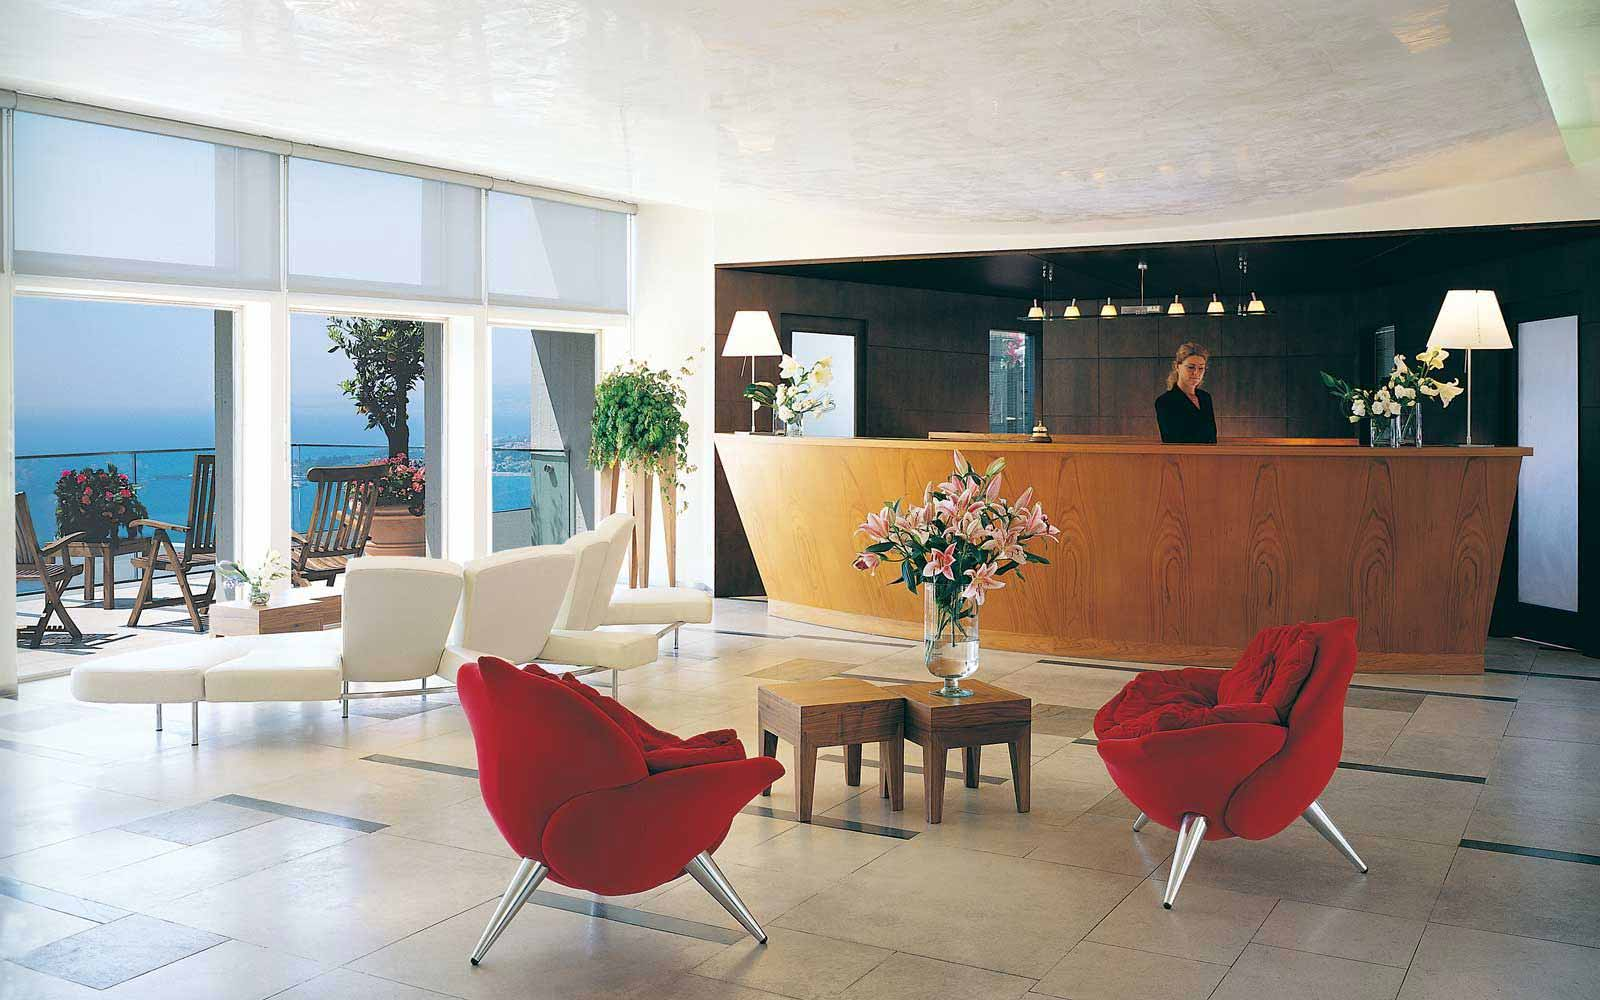 Reception desk at Hotel Monte Tauro